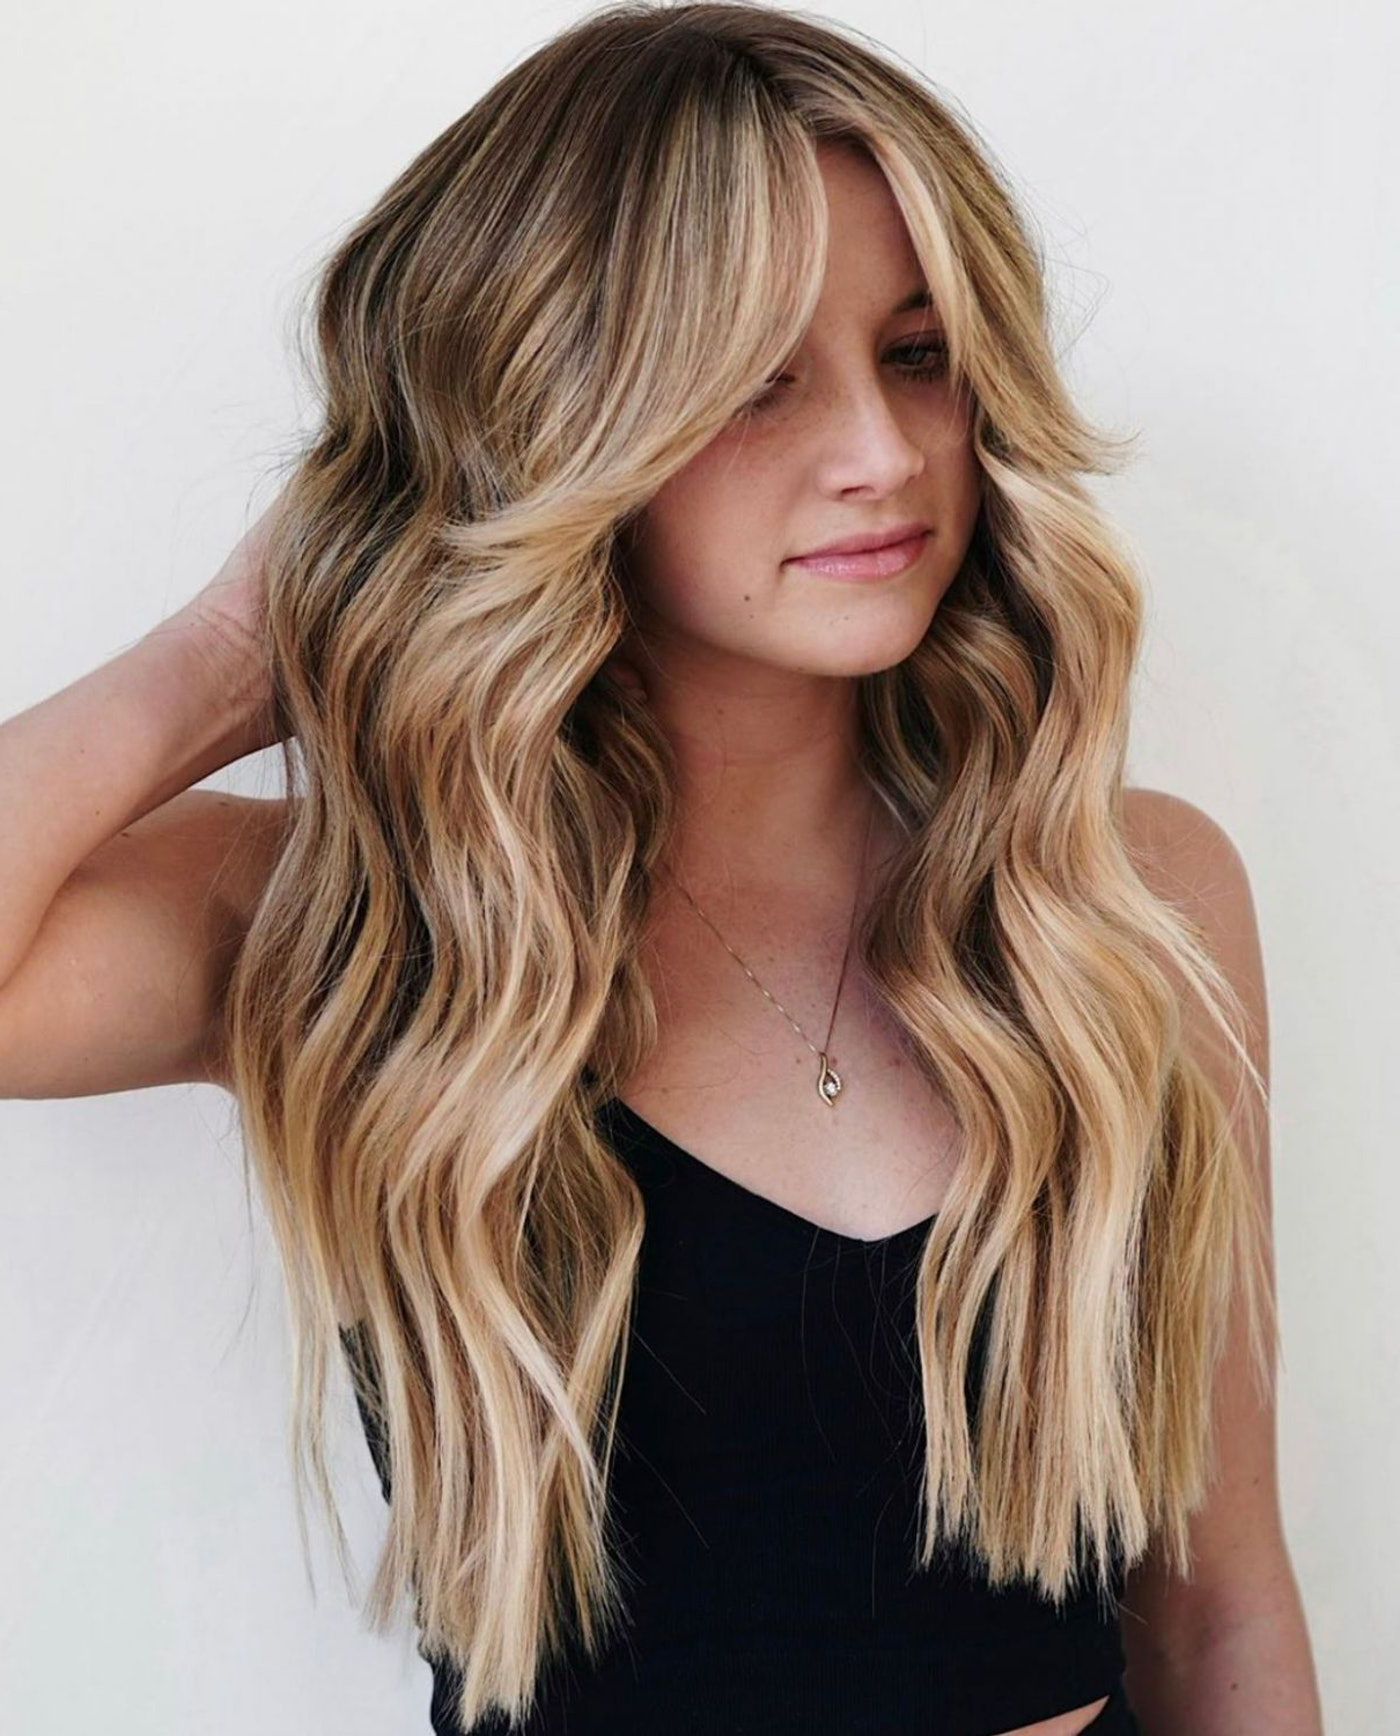 Most Popular Anime Inspired Hairstyle With Feathered Bangs Hairstyles For 11 Gorgeous Reasons Why Curtain Bangs Rule (View 5 of 20)